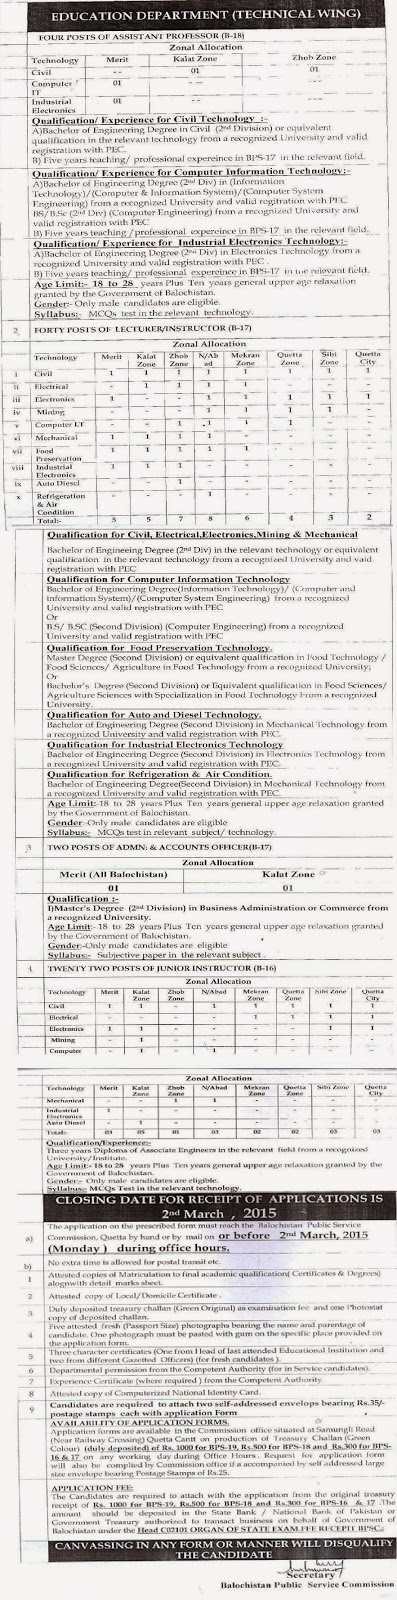 bpsc advertisement no 1-2015